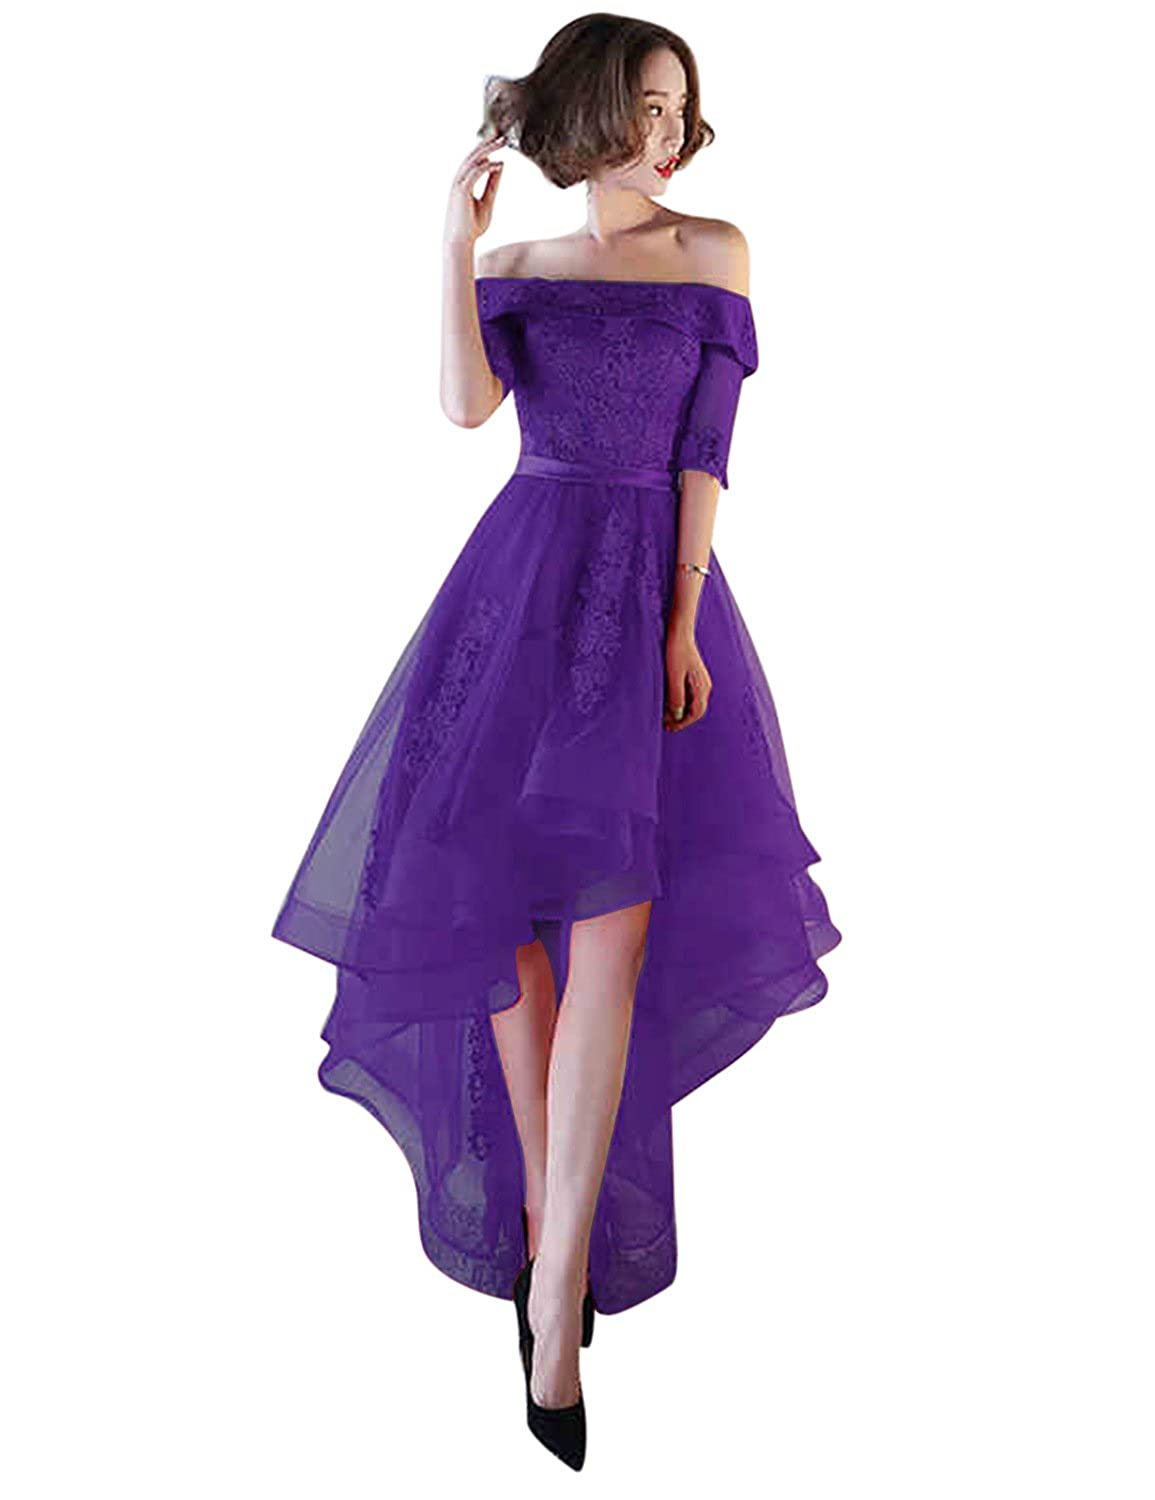 Purple BessWedding Women's Tulle High Low Homecoming Dresses Short 2018 Formal Prom Gown BHZ707